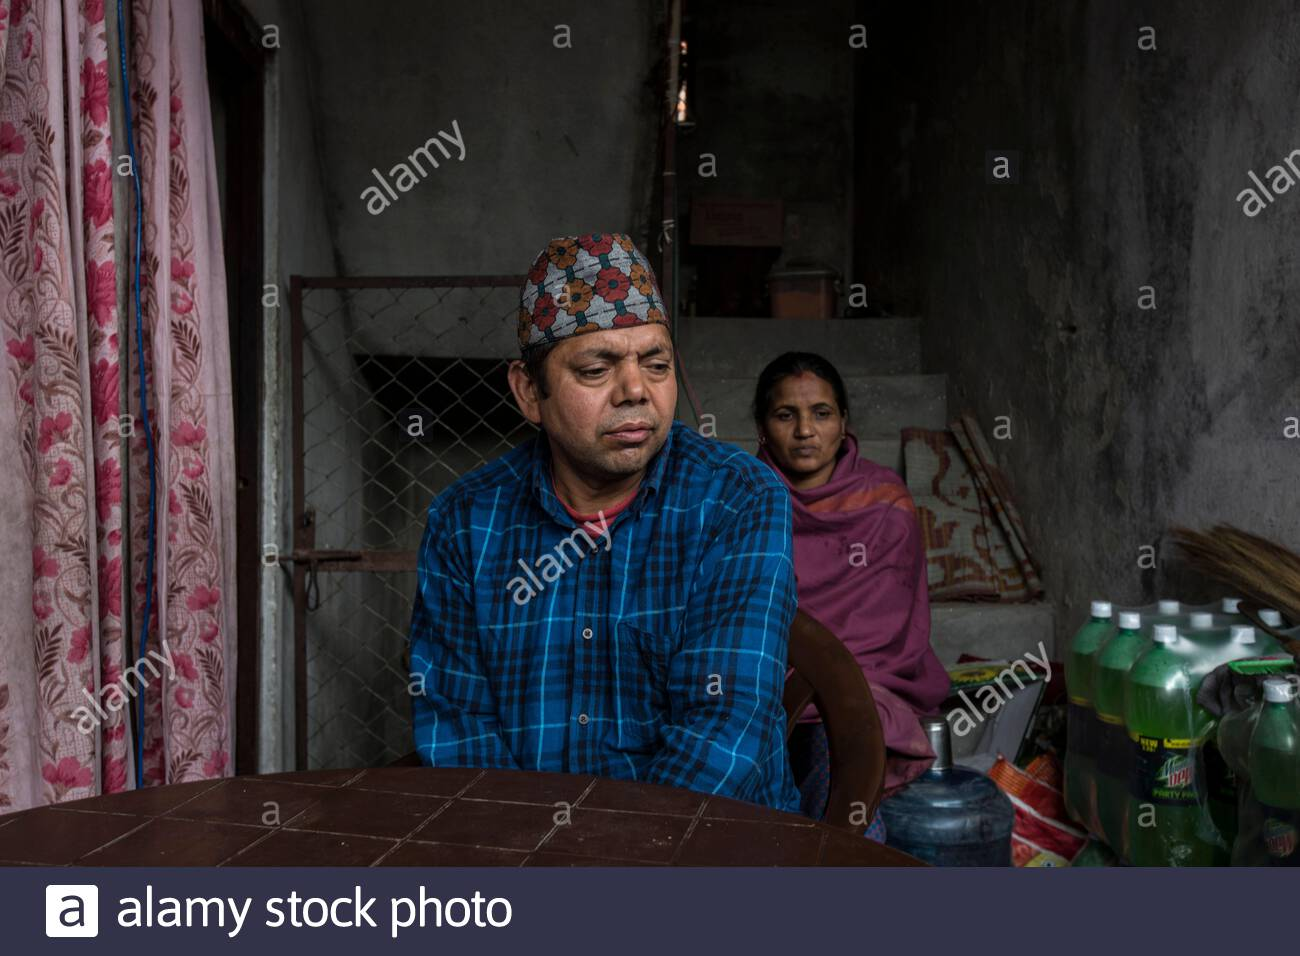 Nepal - Kathmandu - Chom Prasad Panthi (left), 45-year-old, in his house in New Baneshwor, Kathmandu, where he owns a grocery shop along with his wife (right). Originally from the village of Arkhale-5 in the central district of Gulmi, two years ago Panthi Stock Photo